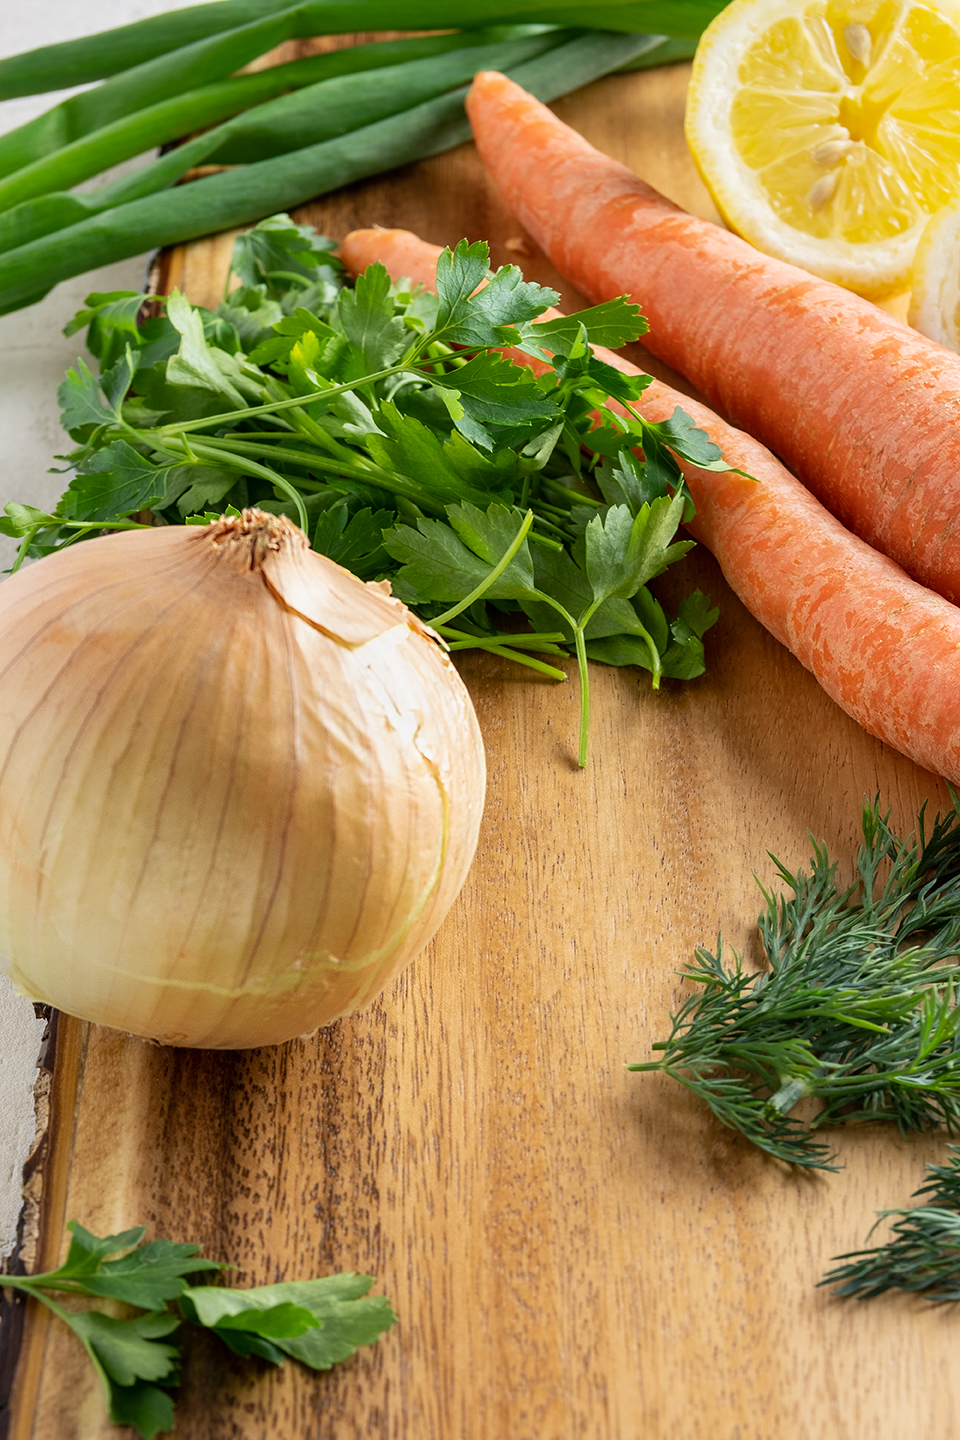 Ingredients for soup, Onions, Carrots, Scallions, Lemon, Parsley and Dill on a wooded board.